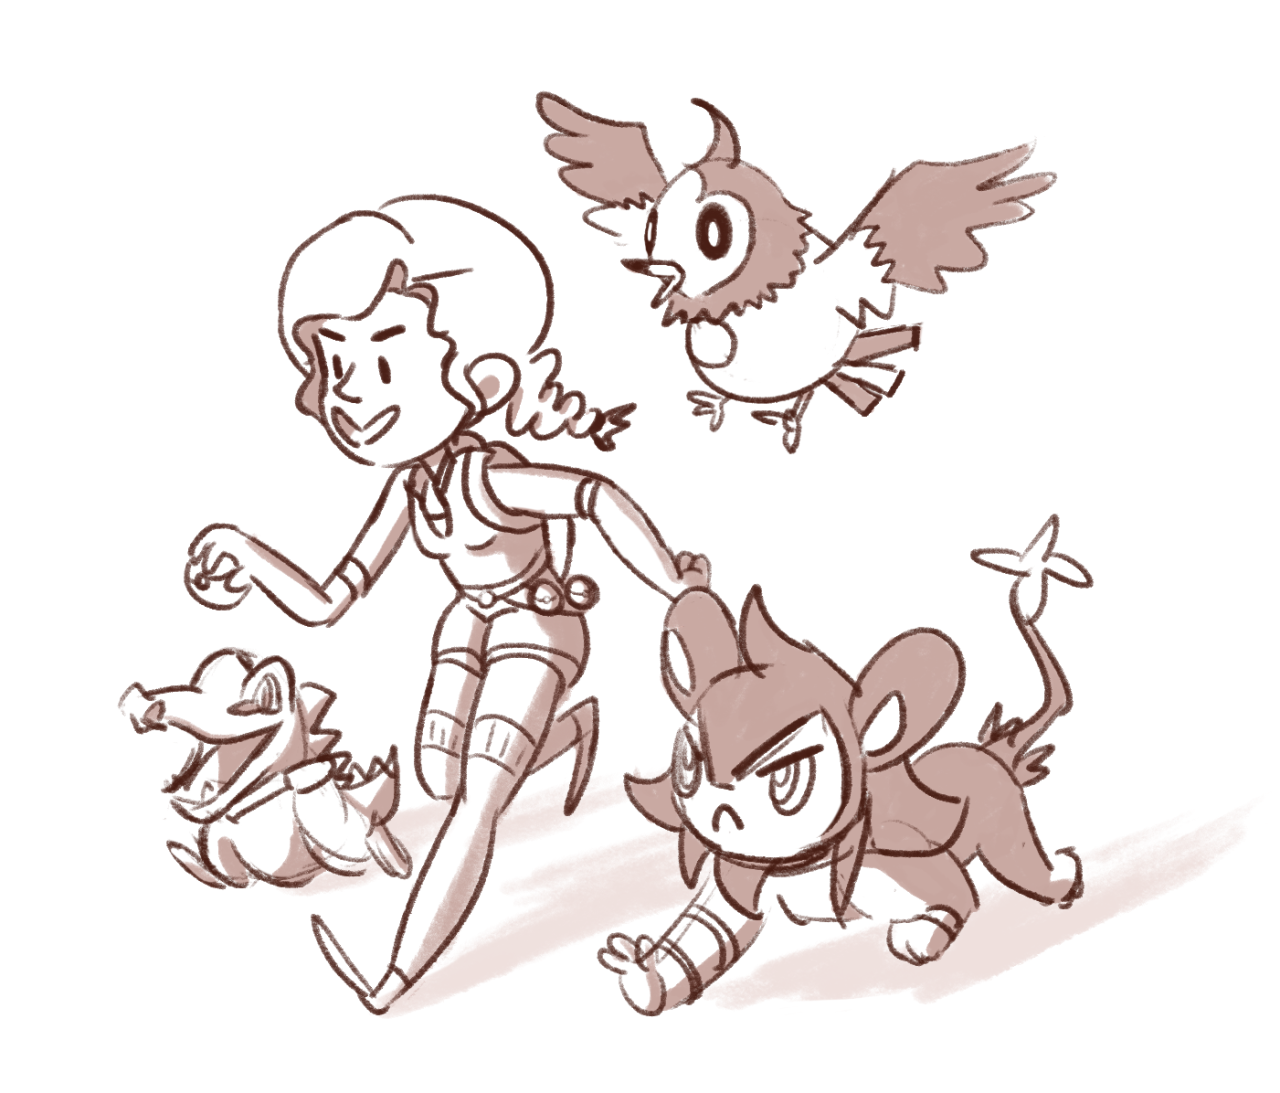 #358 a portion of my fav little poke-team :3